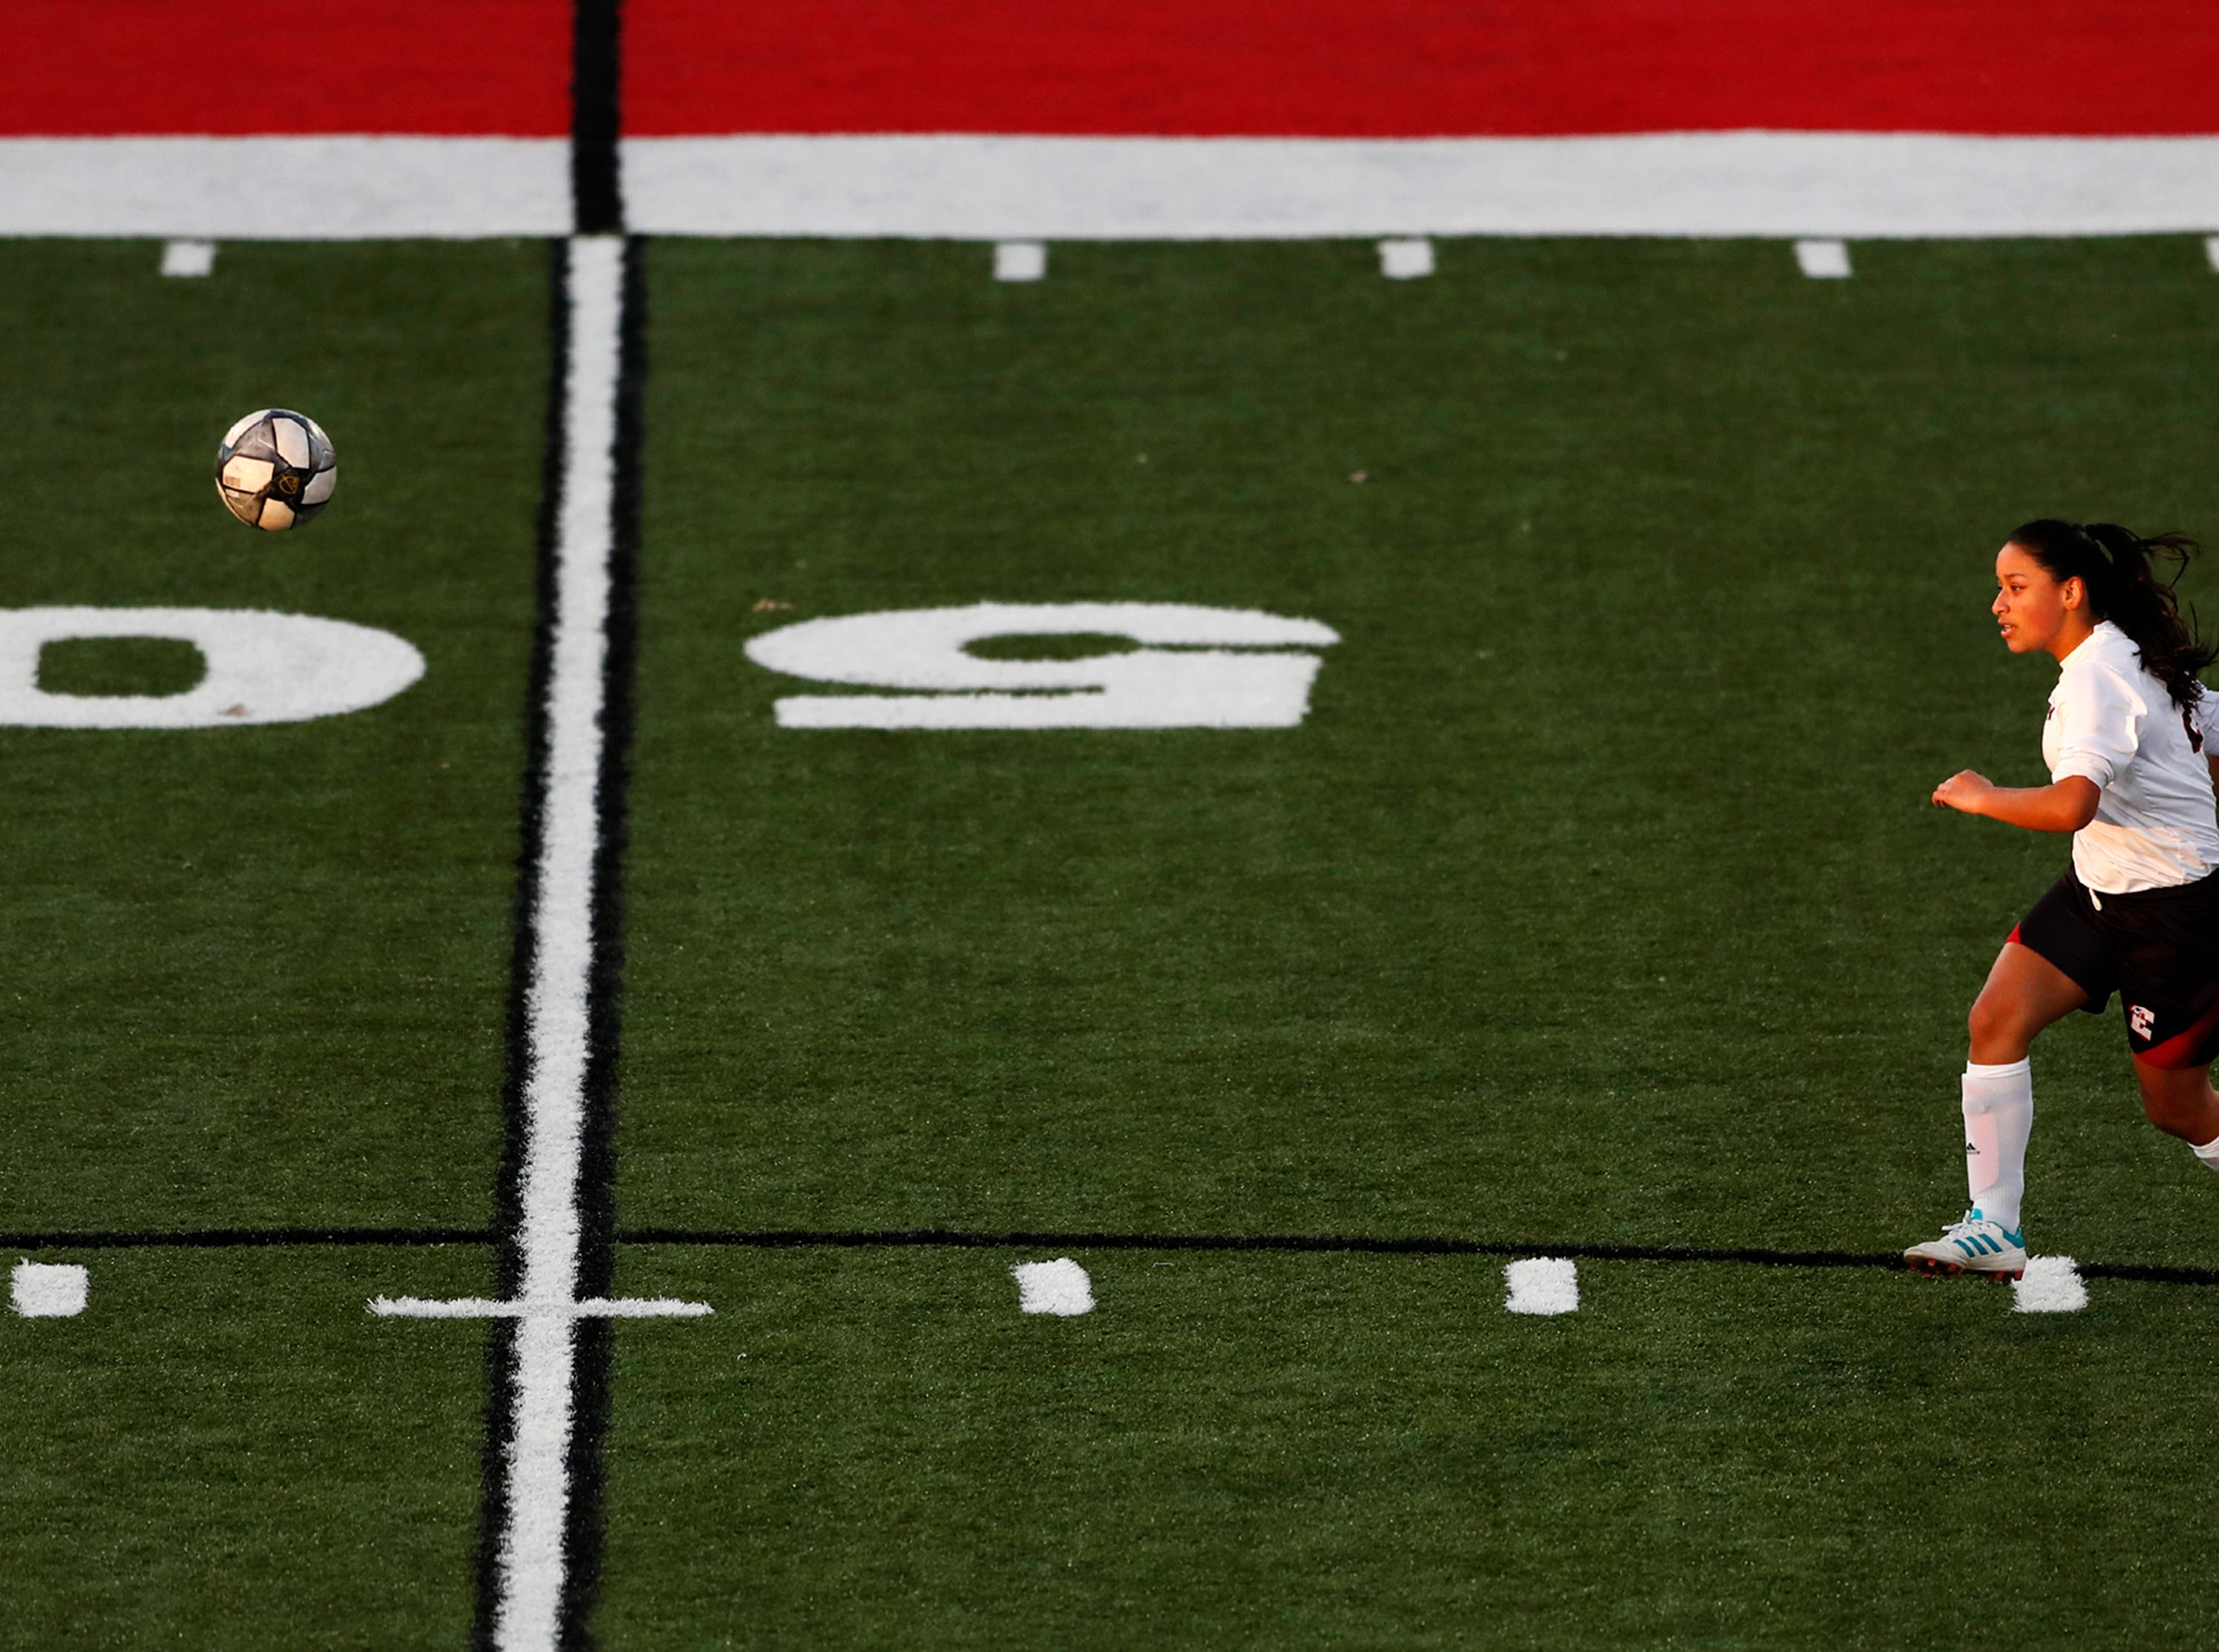 Green Bay East High School's Adriana Montoya Valdez sends a free kick down the field during their match against Hortonville High School Monday, April 8, 2019, in Hortonville, Wis. Danny Damiani/USA TODAY NETWORK-Wisconsin